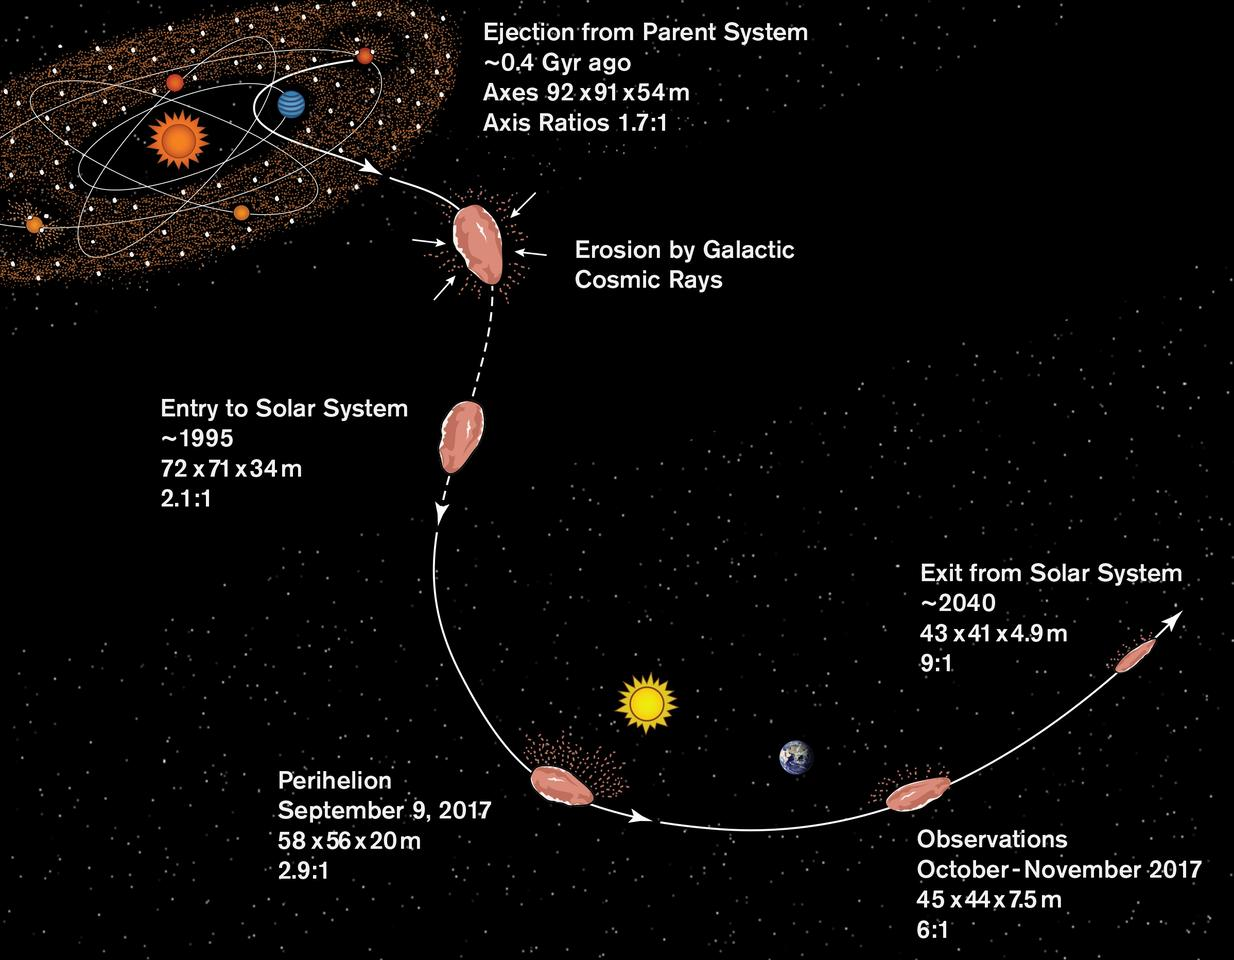 A timeline for 'Oumuamua's half-billion-year journey to the solar system, along with estimates of its size at different times and length-to-width ratio